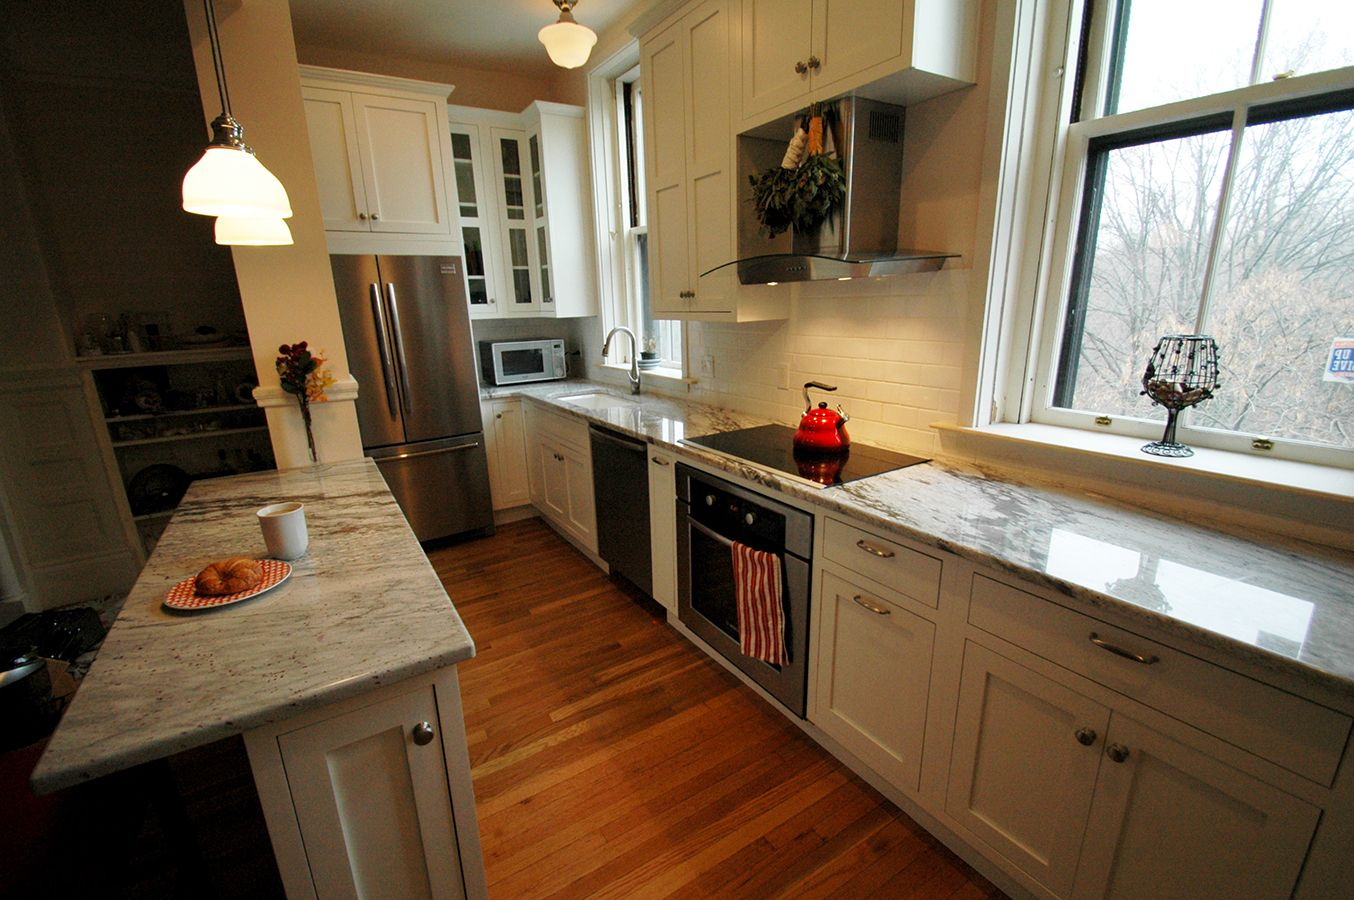 This Brookline Kitchen Remodel Features Before And After Pictures Of A Small Galley That Was Opened Up Drastically Changed